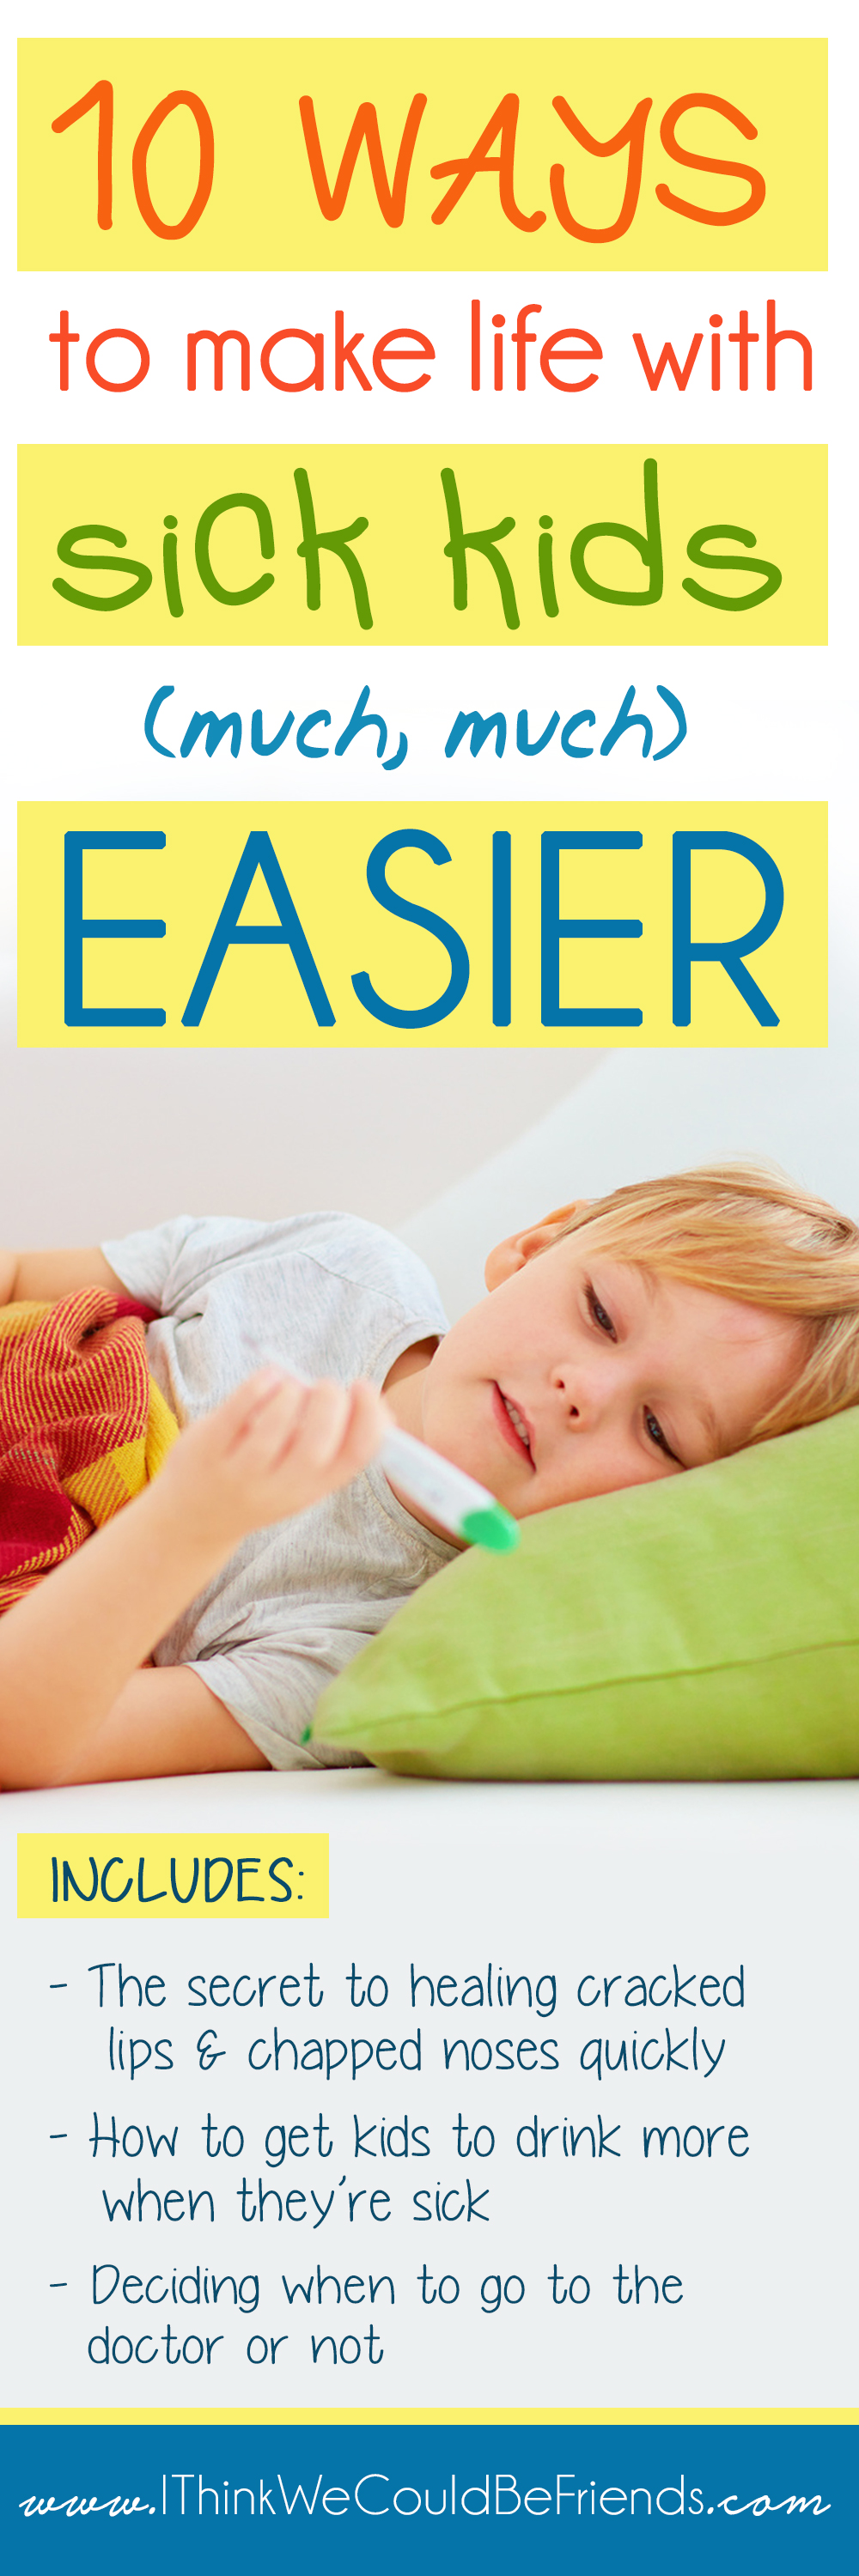 Juggling sick kids with the rest of busy life can be stressful, here are 10 ways to take the stress and worry out of having sick little ones! #Sick #Kids #Baby #Fever #Hacks #Cold #Children